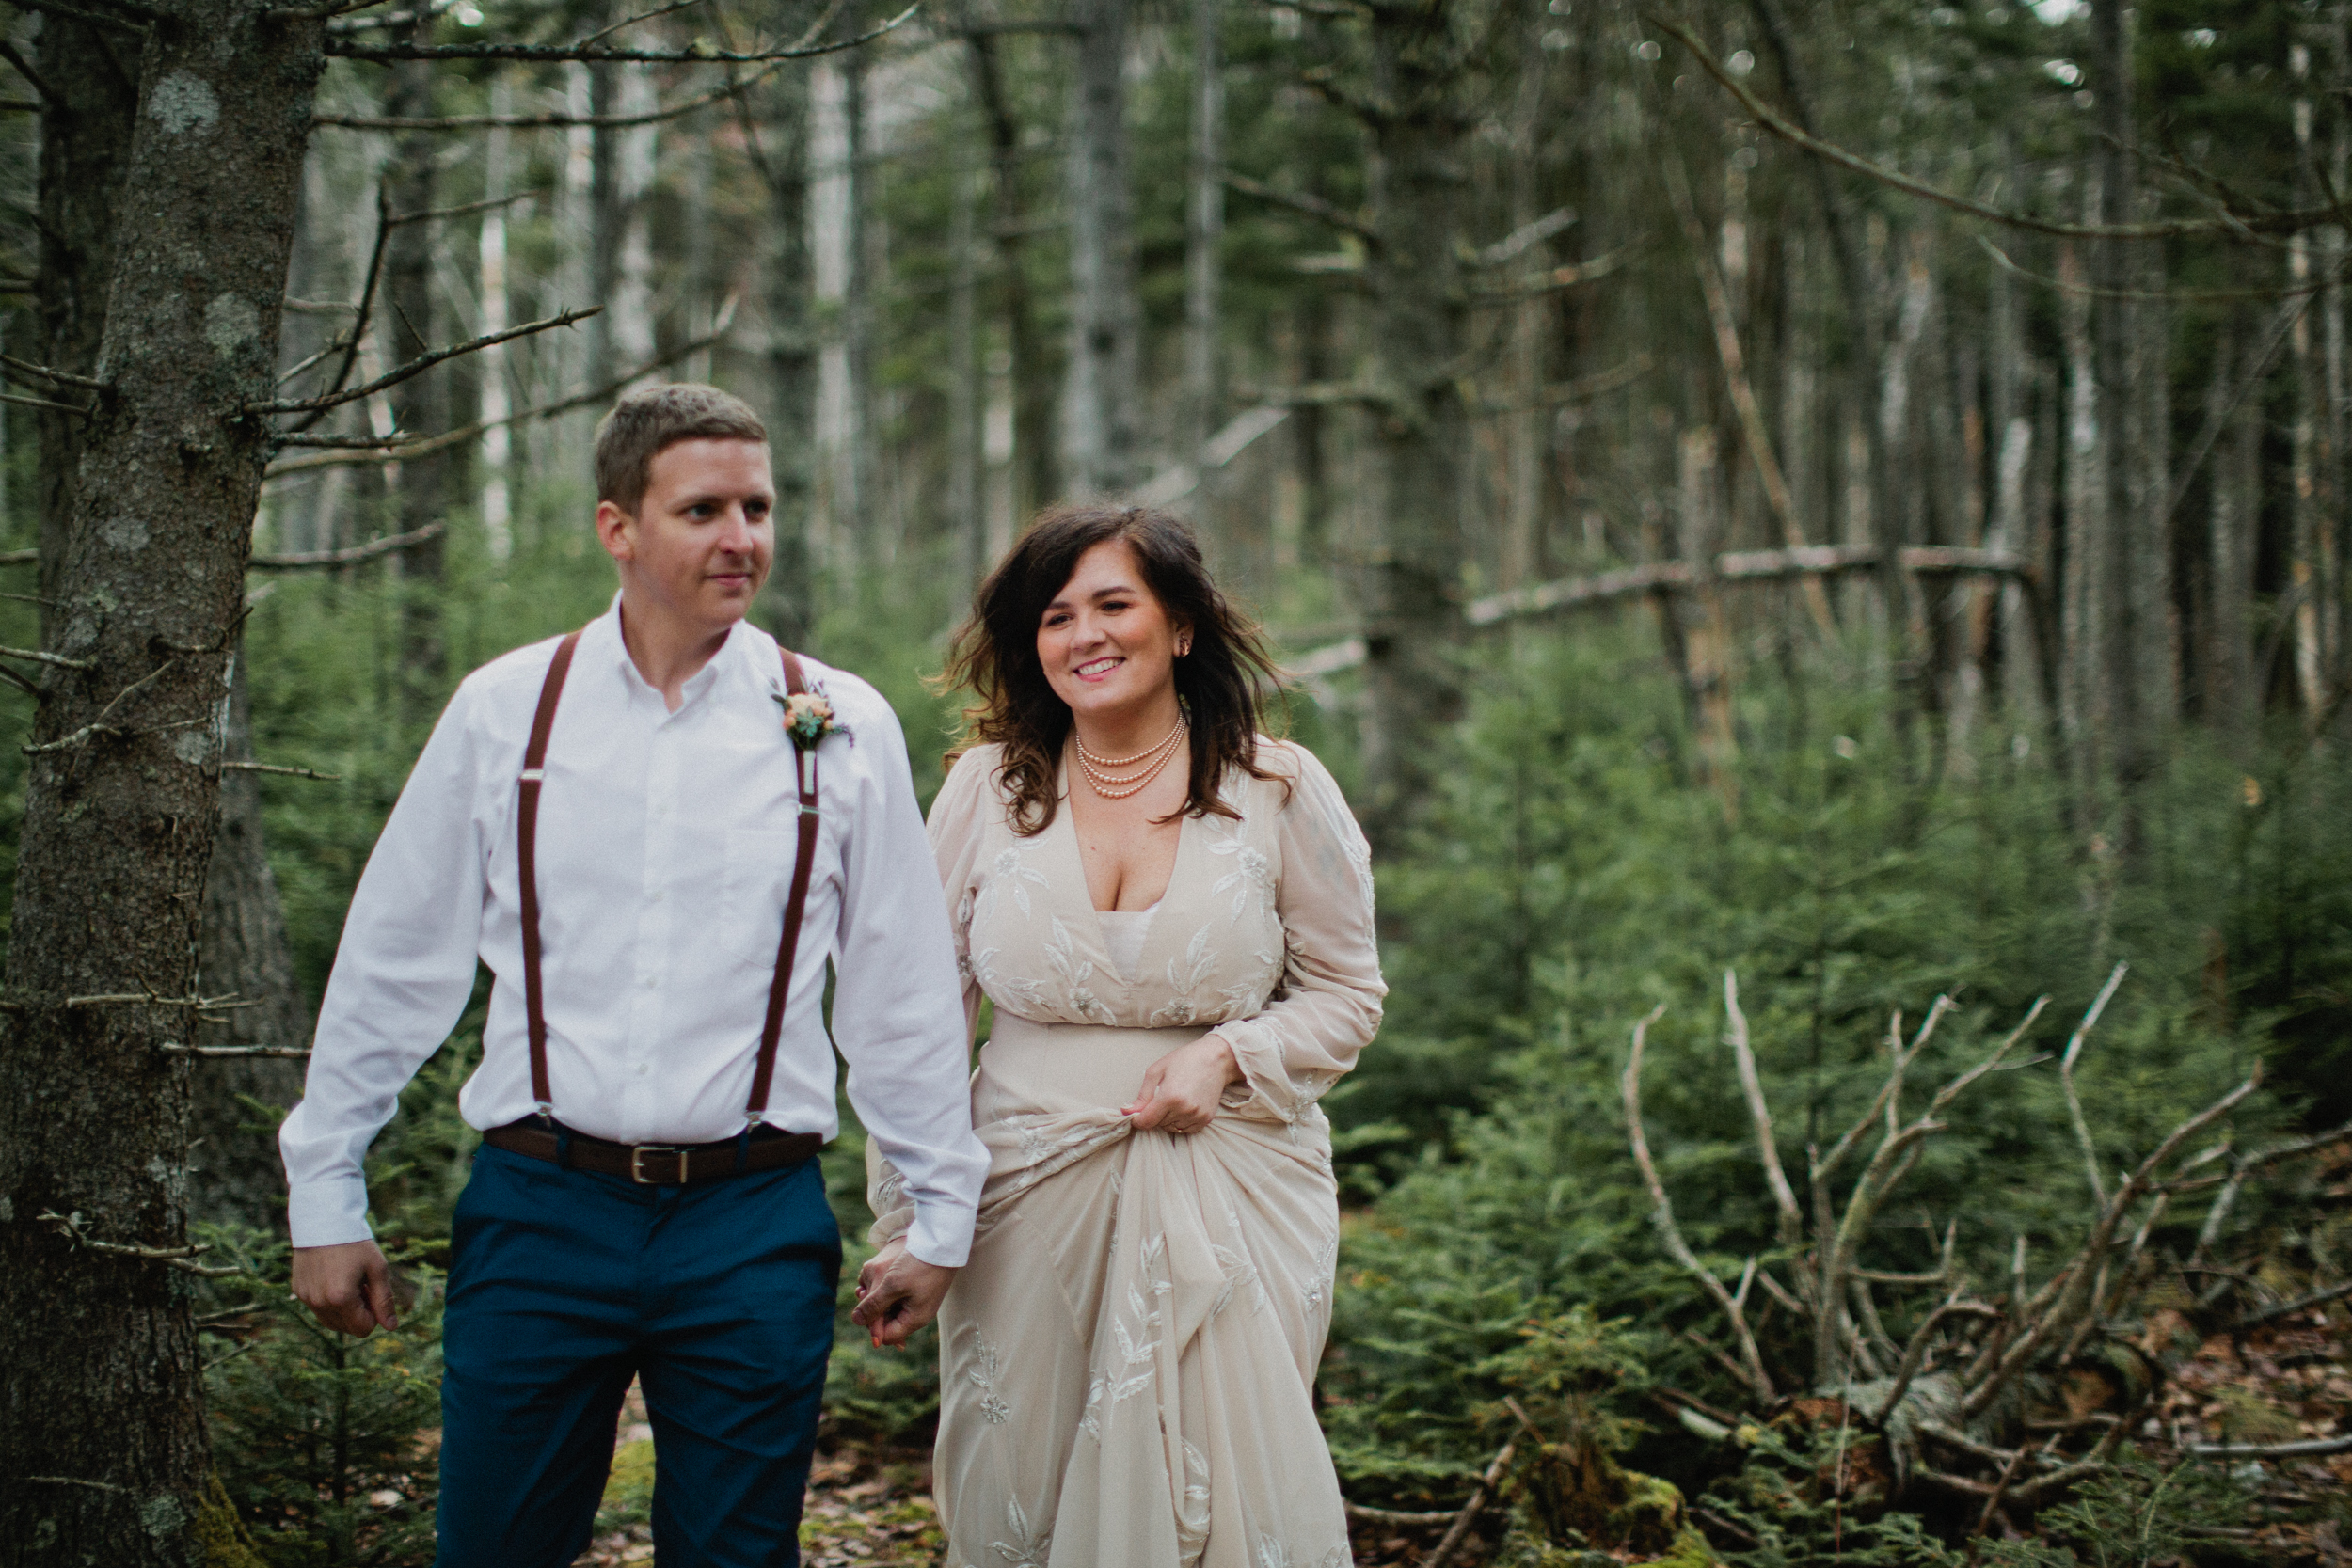 Acadia-Elopement-Photos-434.jpg